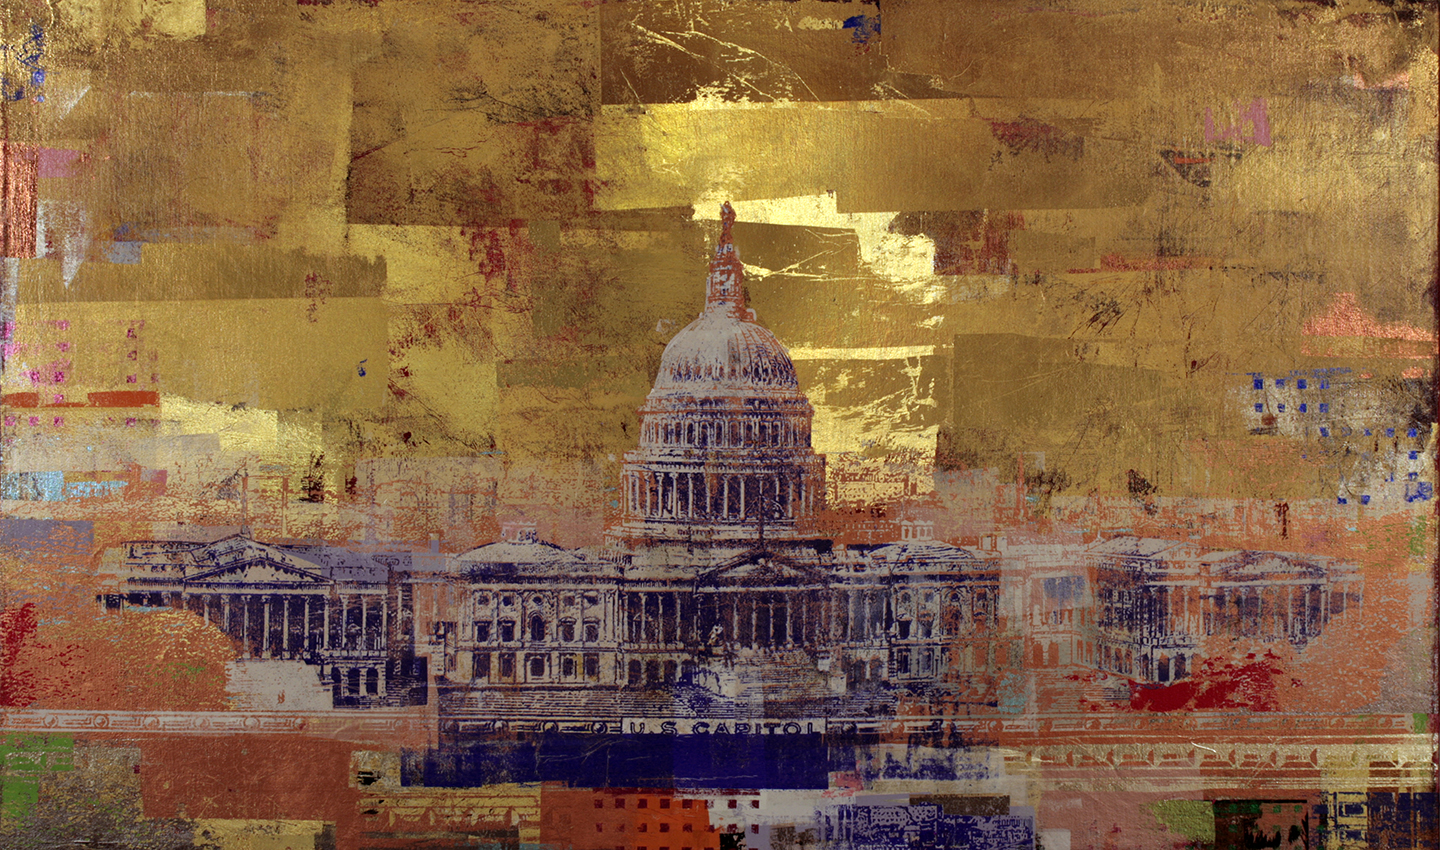 50 dollars Capitol Hill 36 by 60 2015